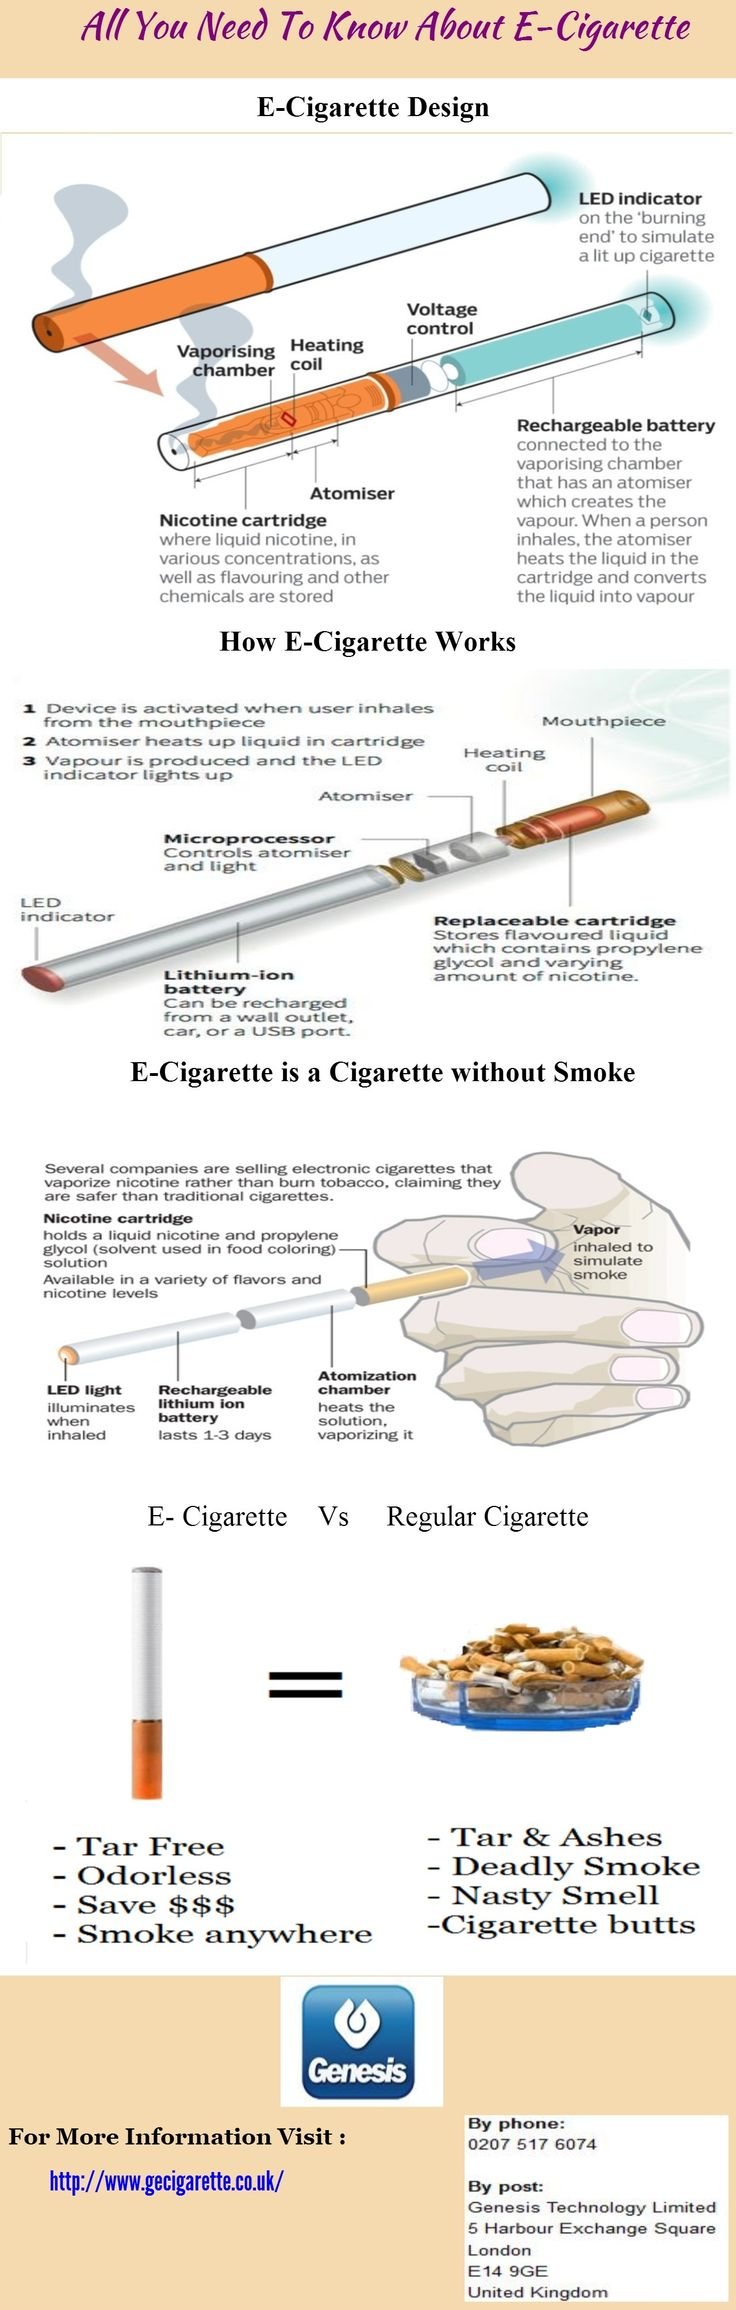 All You need to Know about E-cigarette